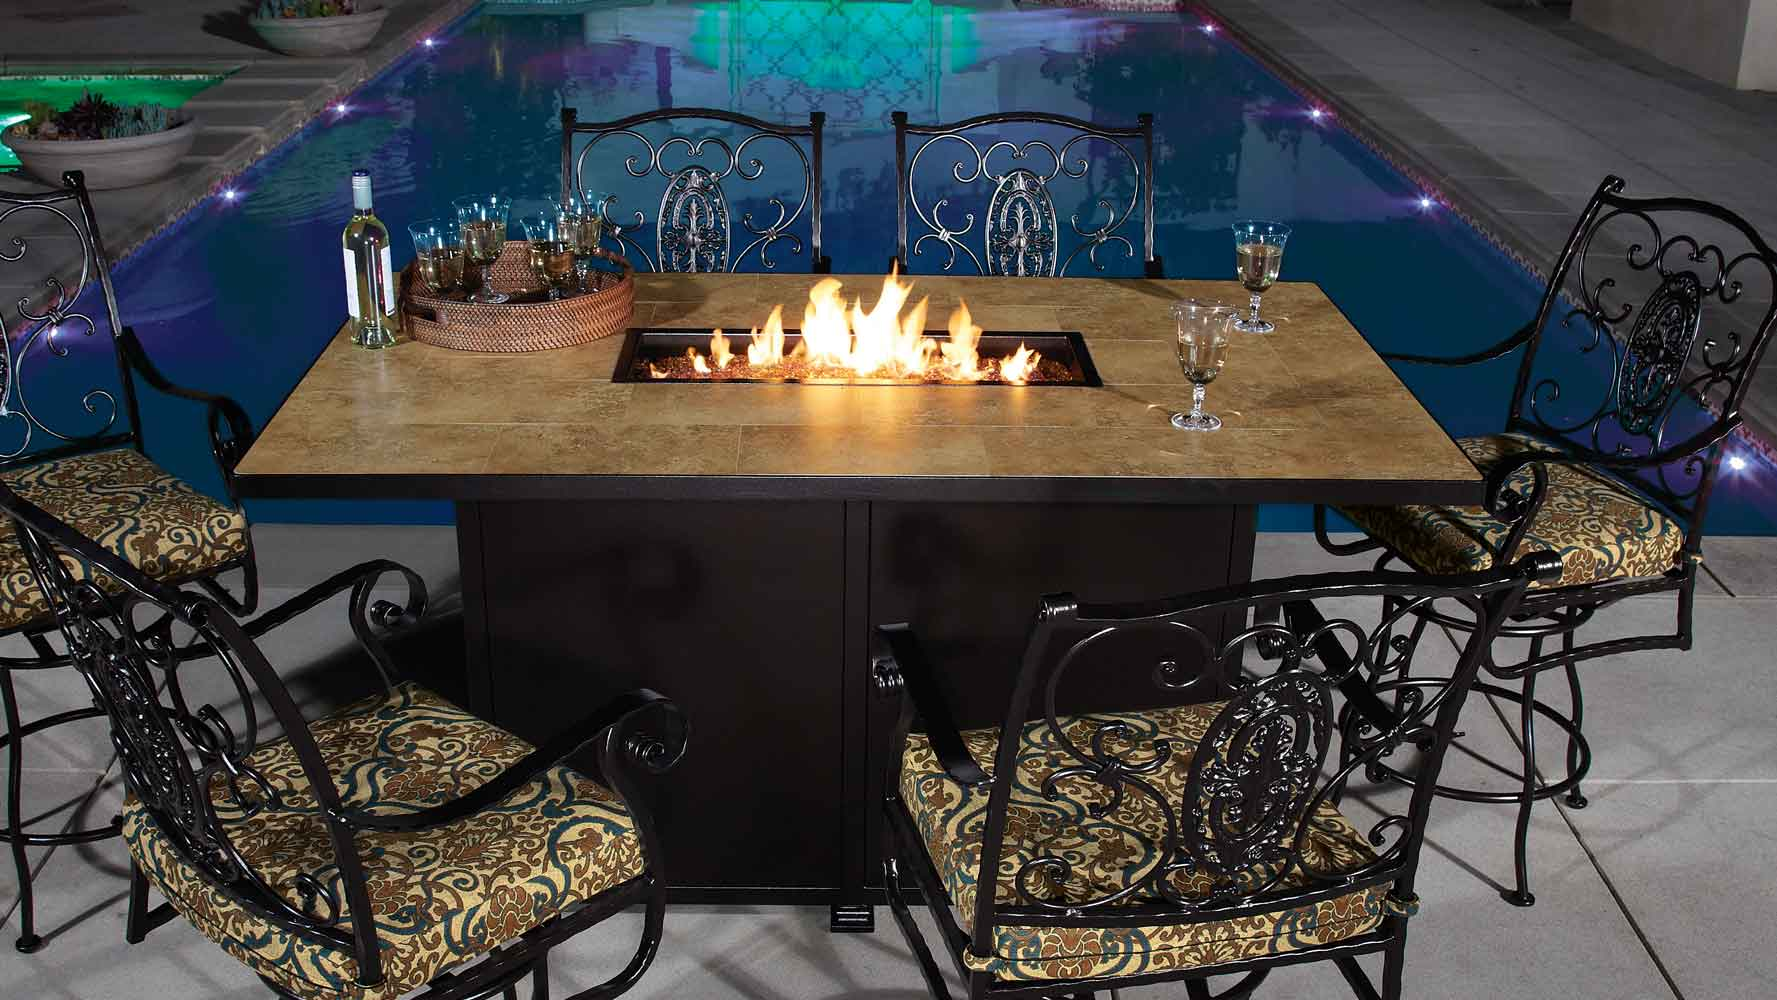 santorini-counter-height-fire-pit